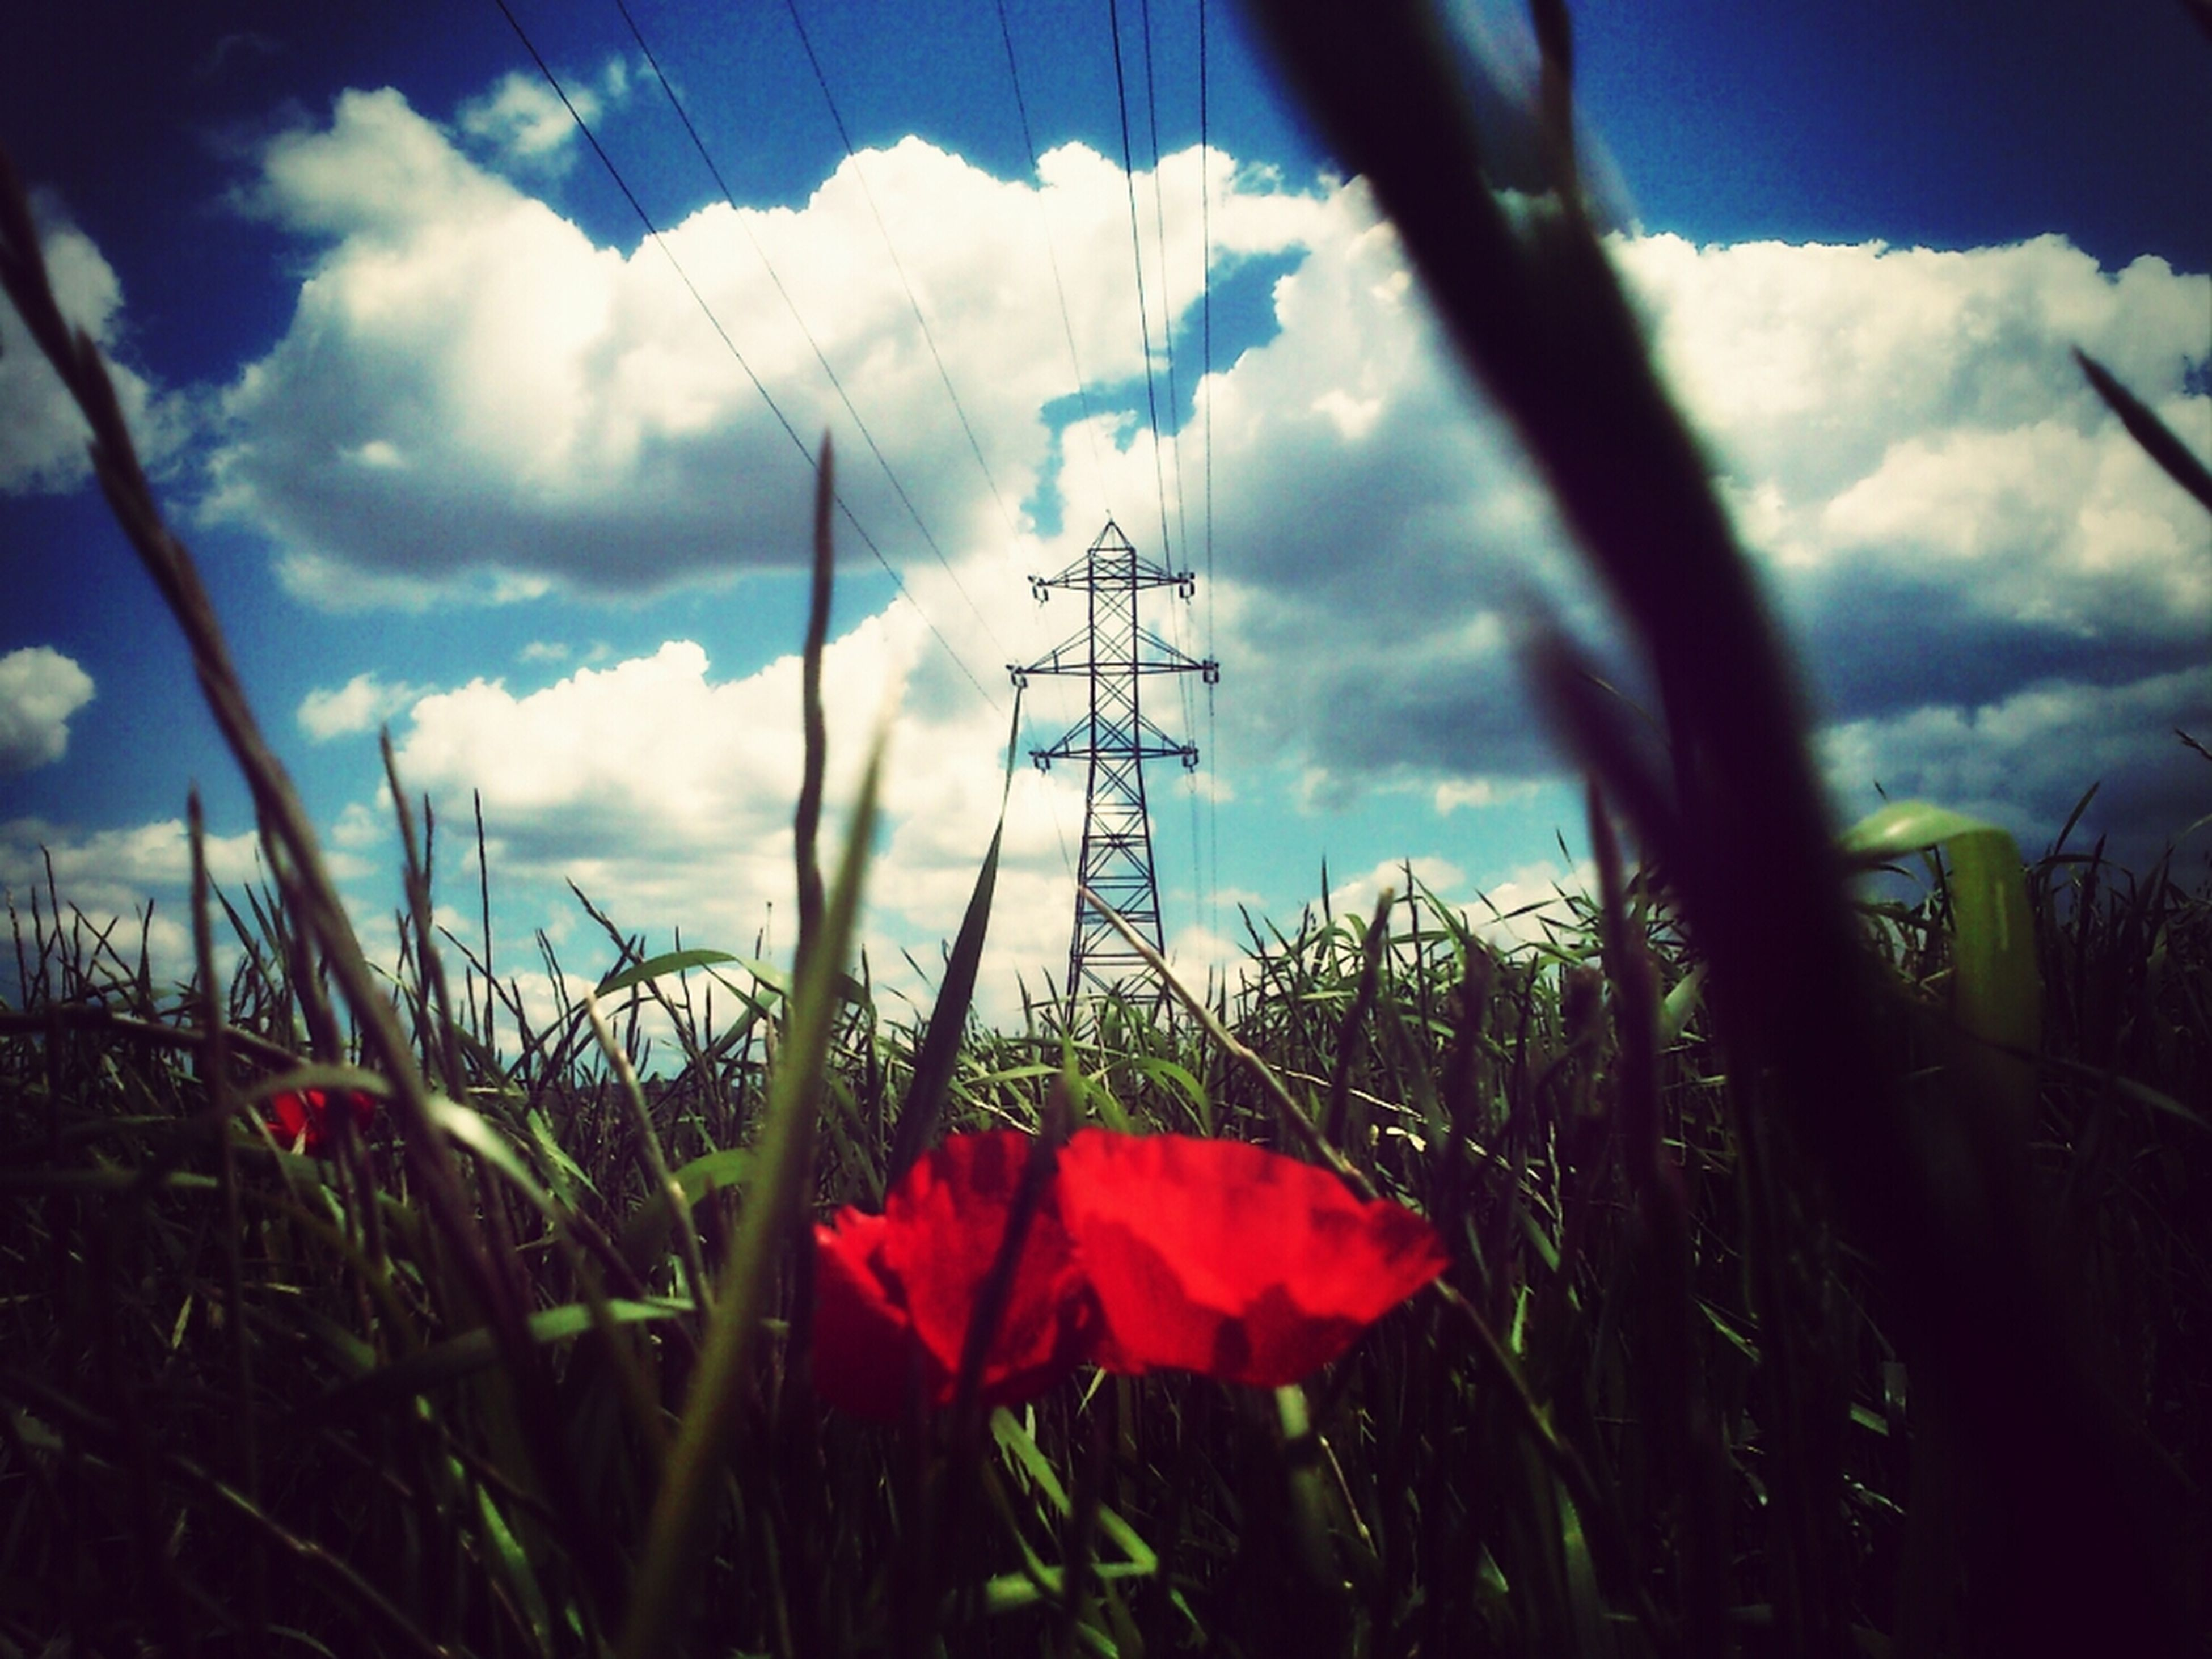 flower, sky, field, growth, plant, cloud - sky, nature, fragility, beauty in nature, freshness, cloud, stem, poppy, landscape, grass, cloudy, tranquility, low angle view, electricity pylon, outdoors